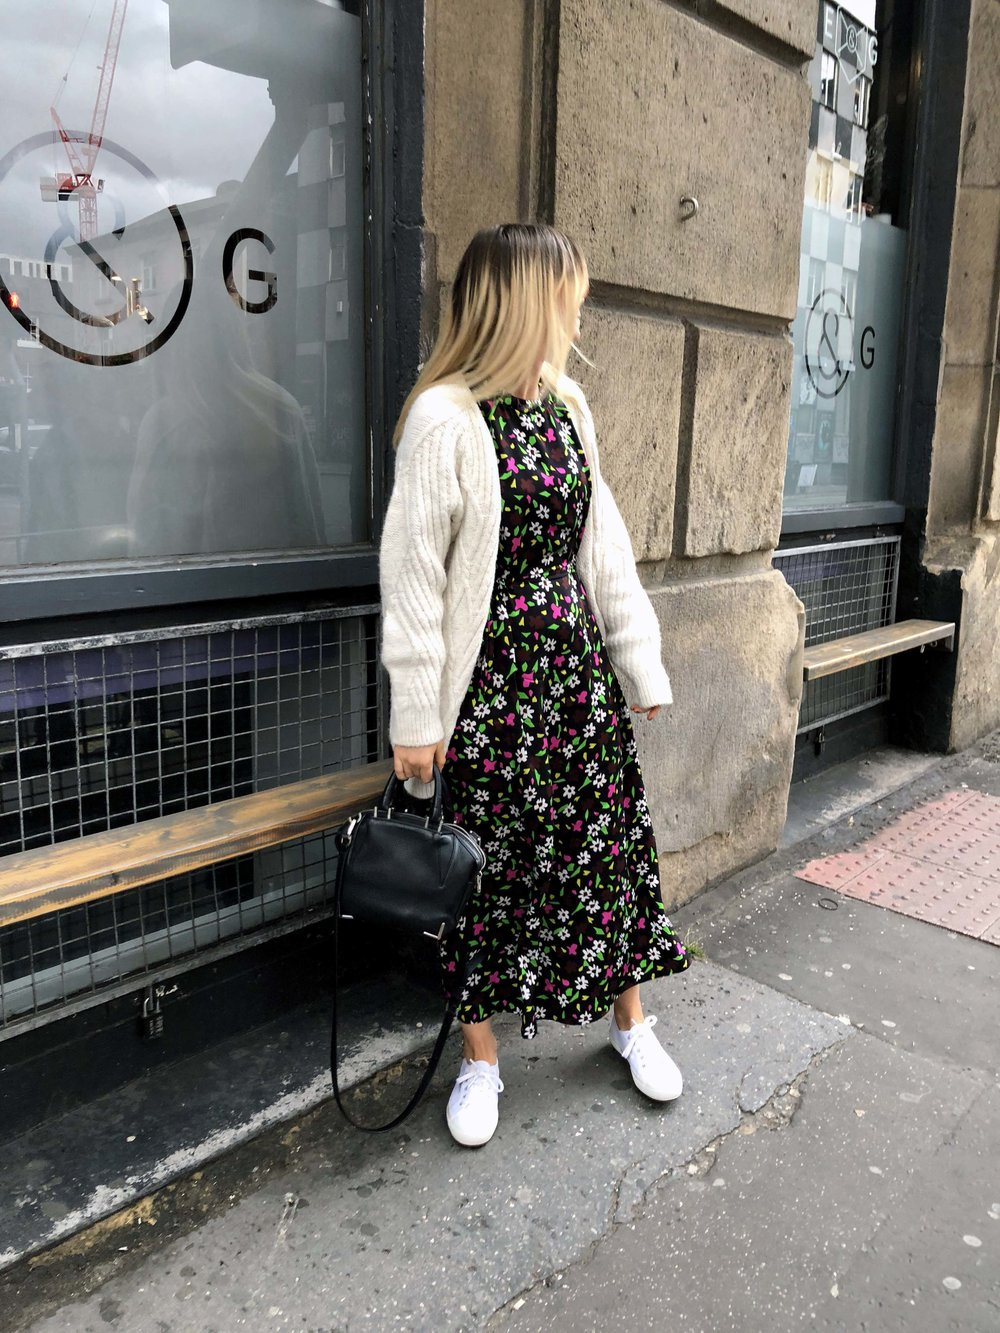 TOPSHOP BOUTIQUE DRESS, CHUNKY CARDIGAN, NORTHERN MAGPIE, MANCHESTER BRUNCH PLACES 7